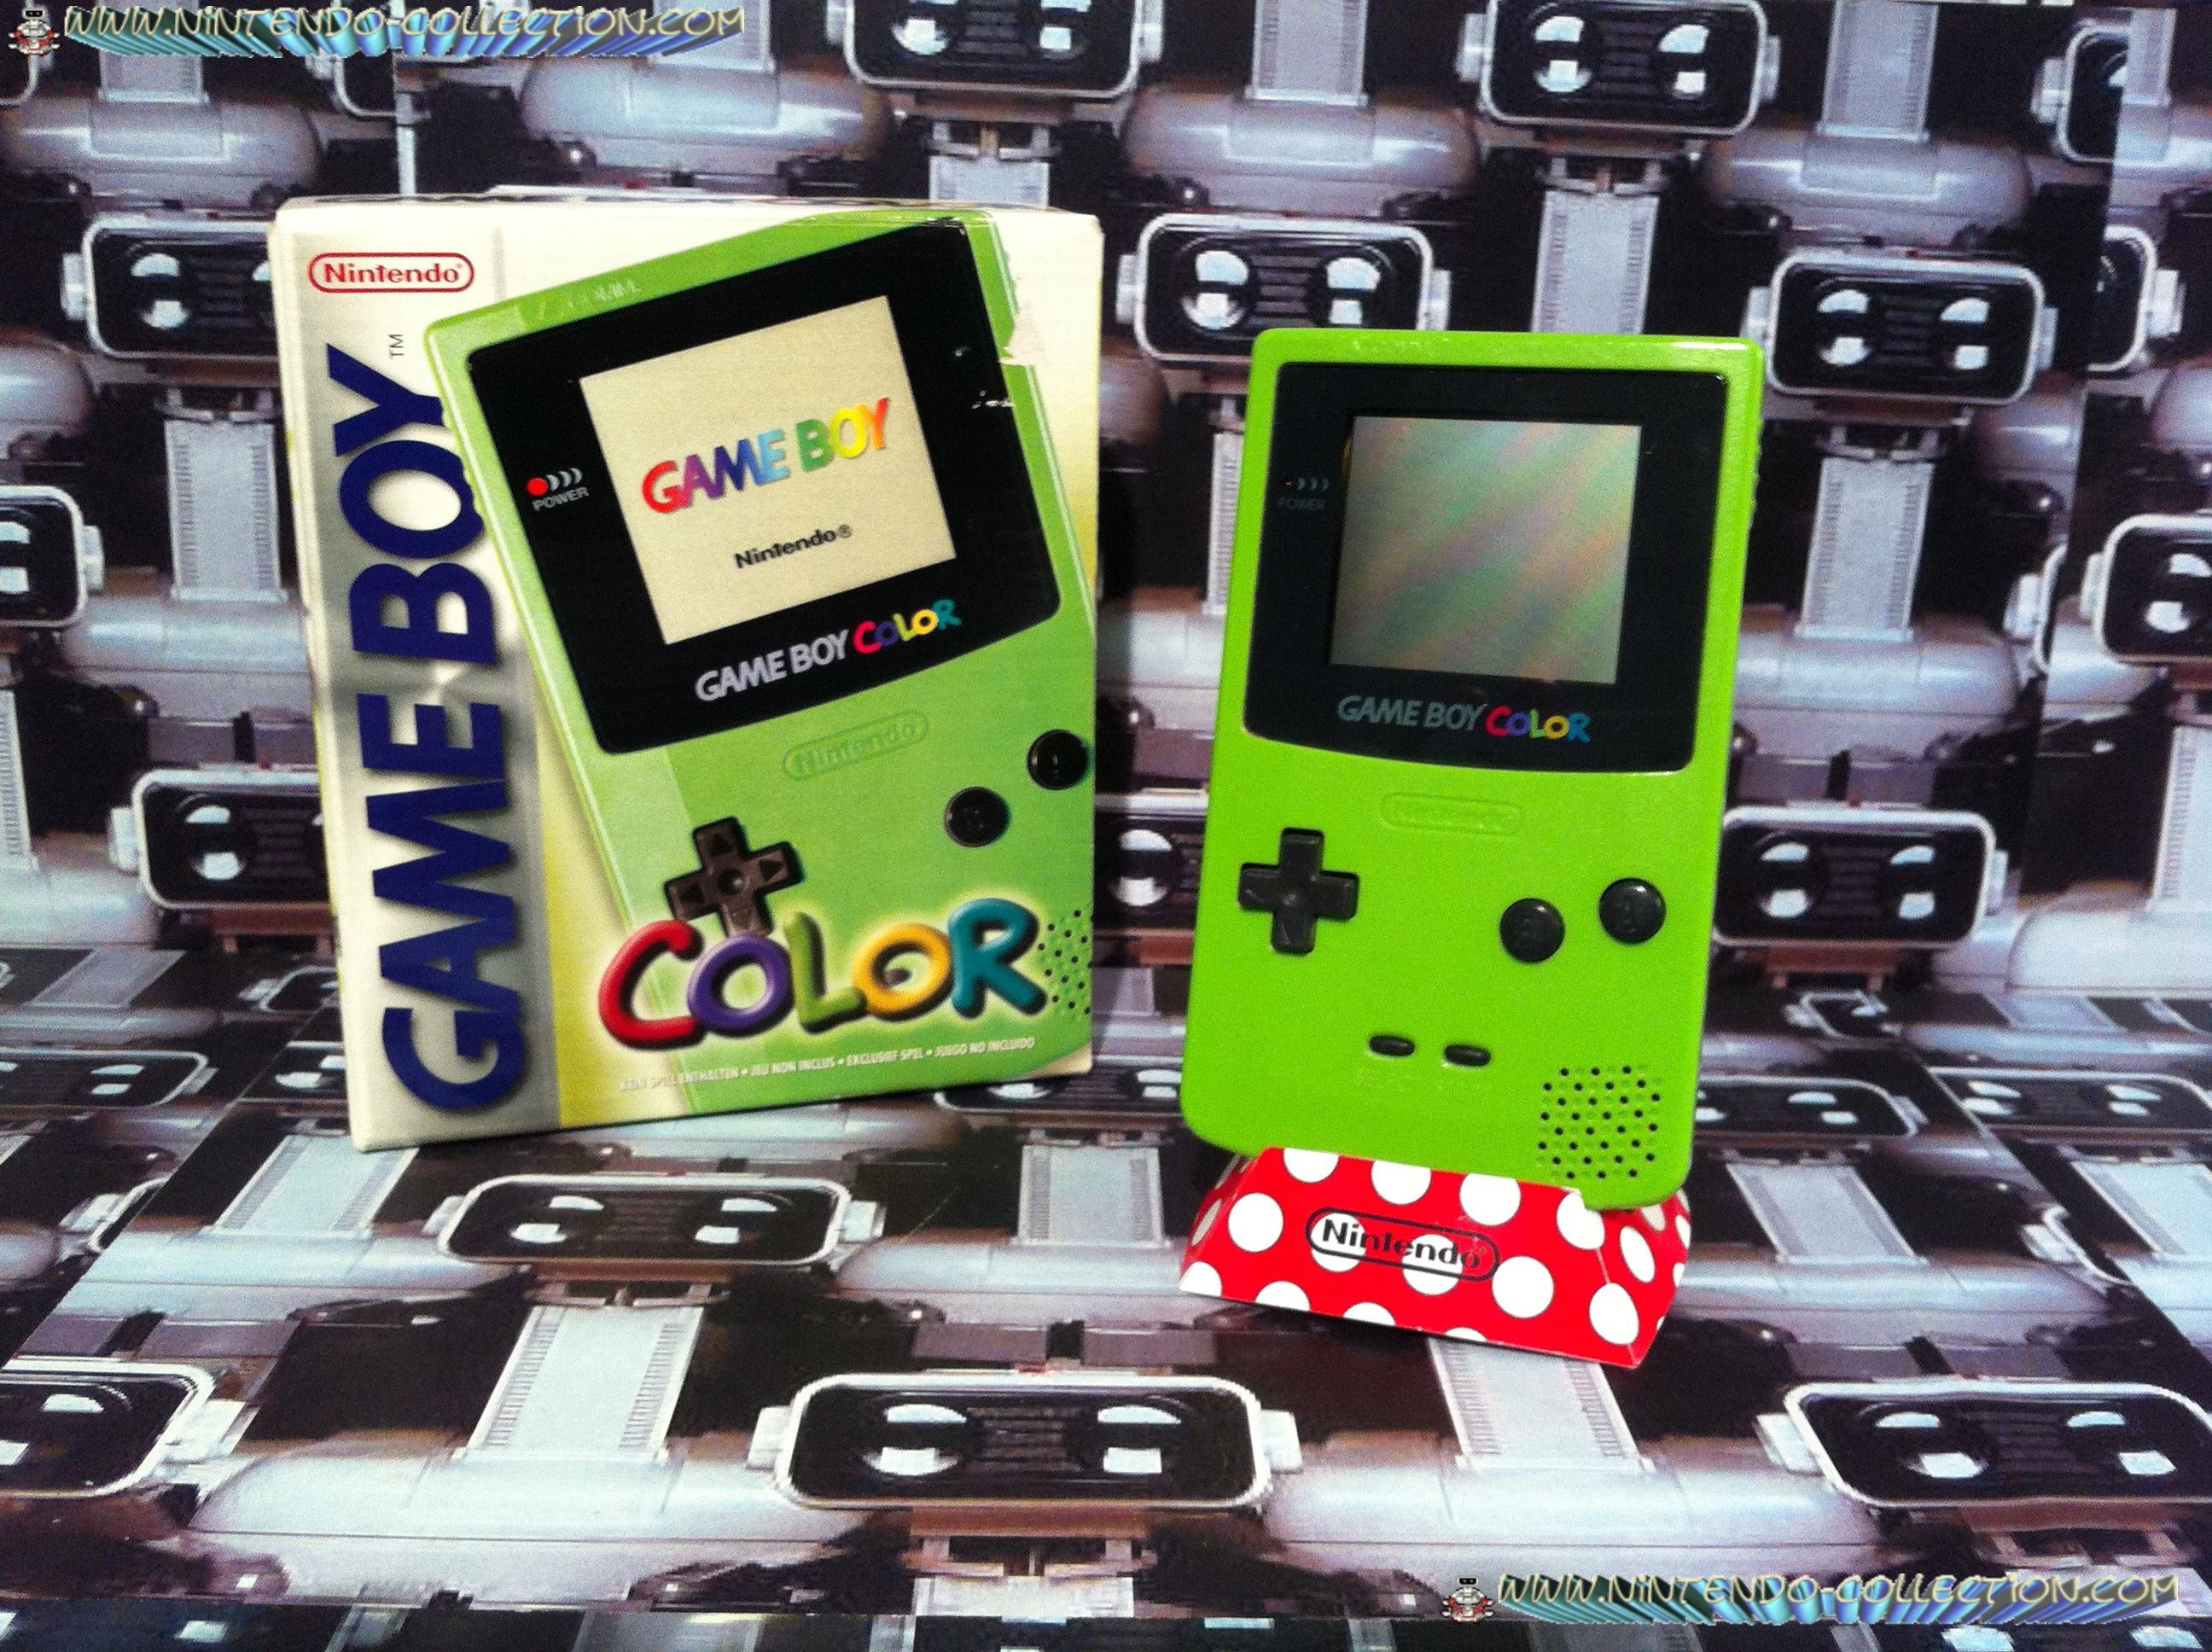 www.nintendo-collection.com - Gameboy Color Kiwi edition Europe european